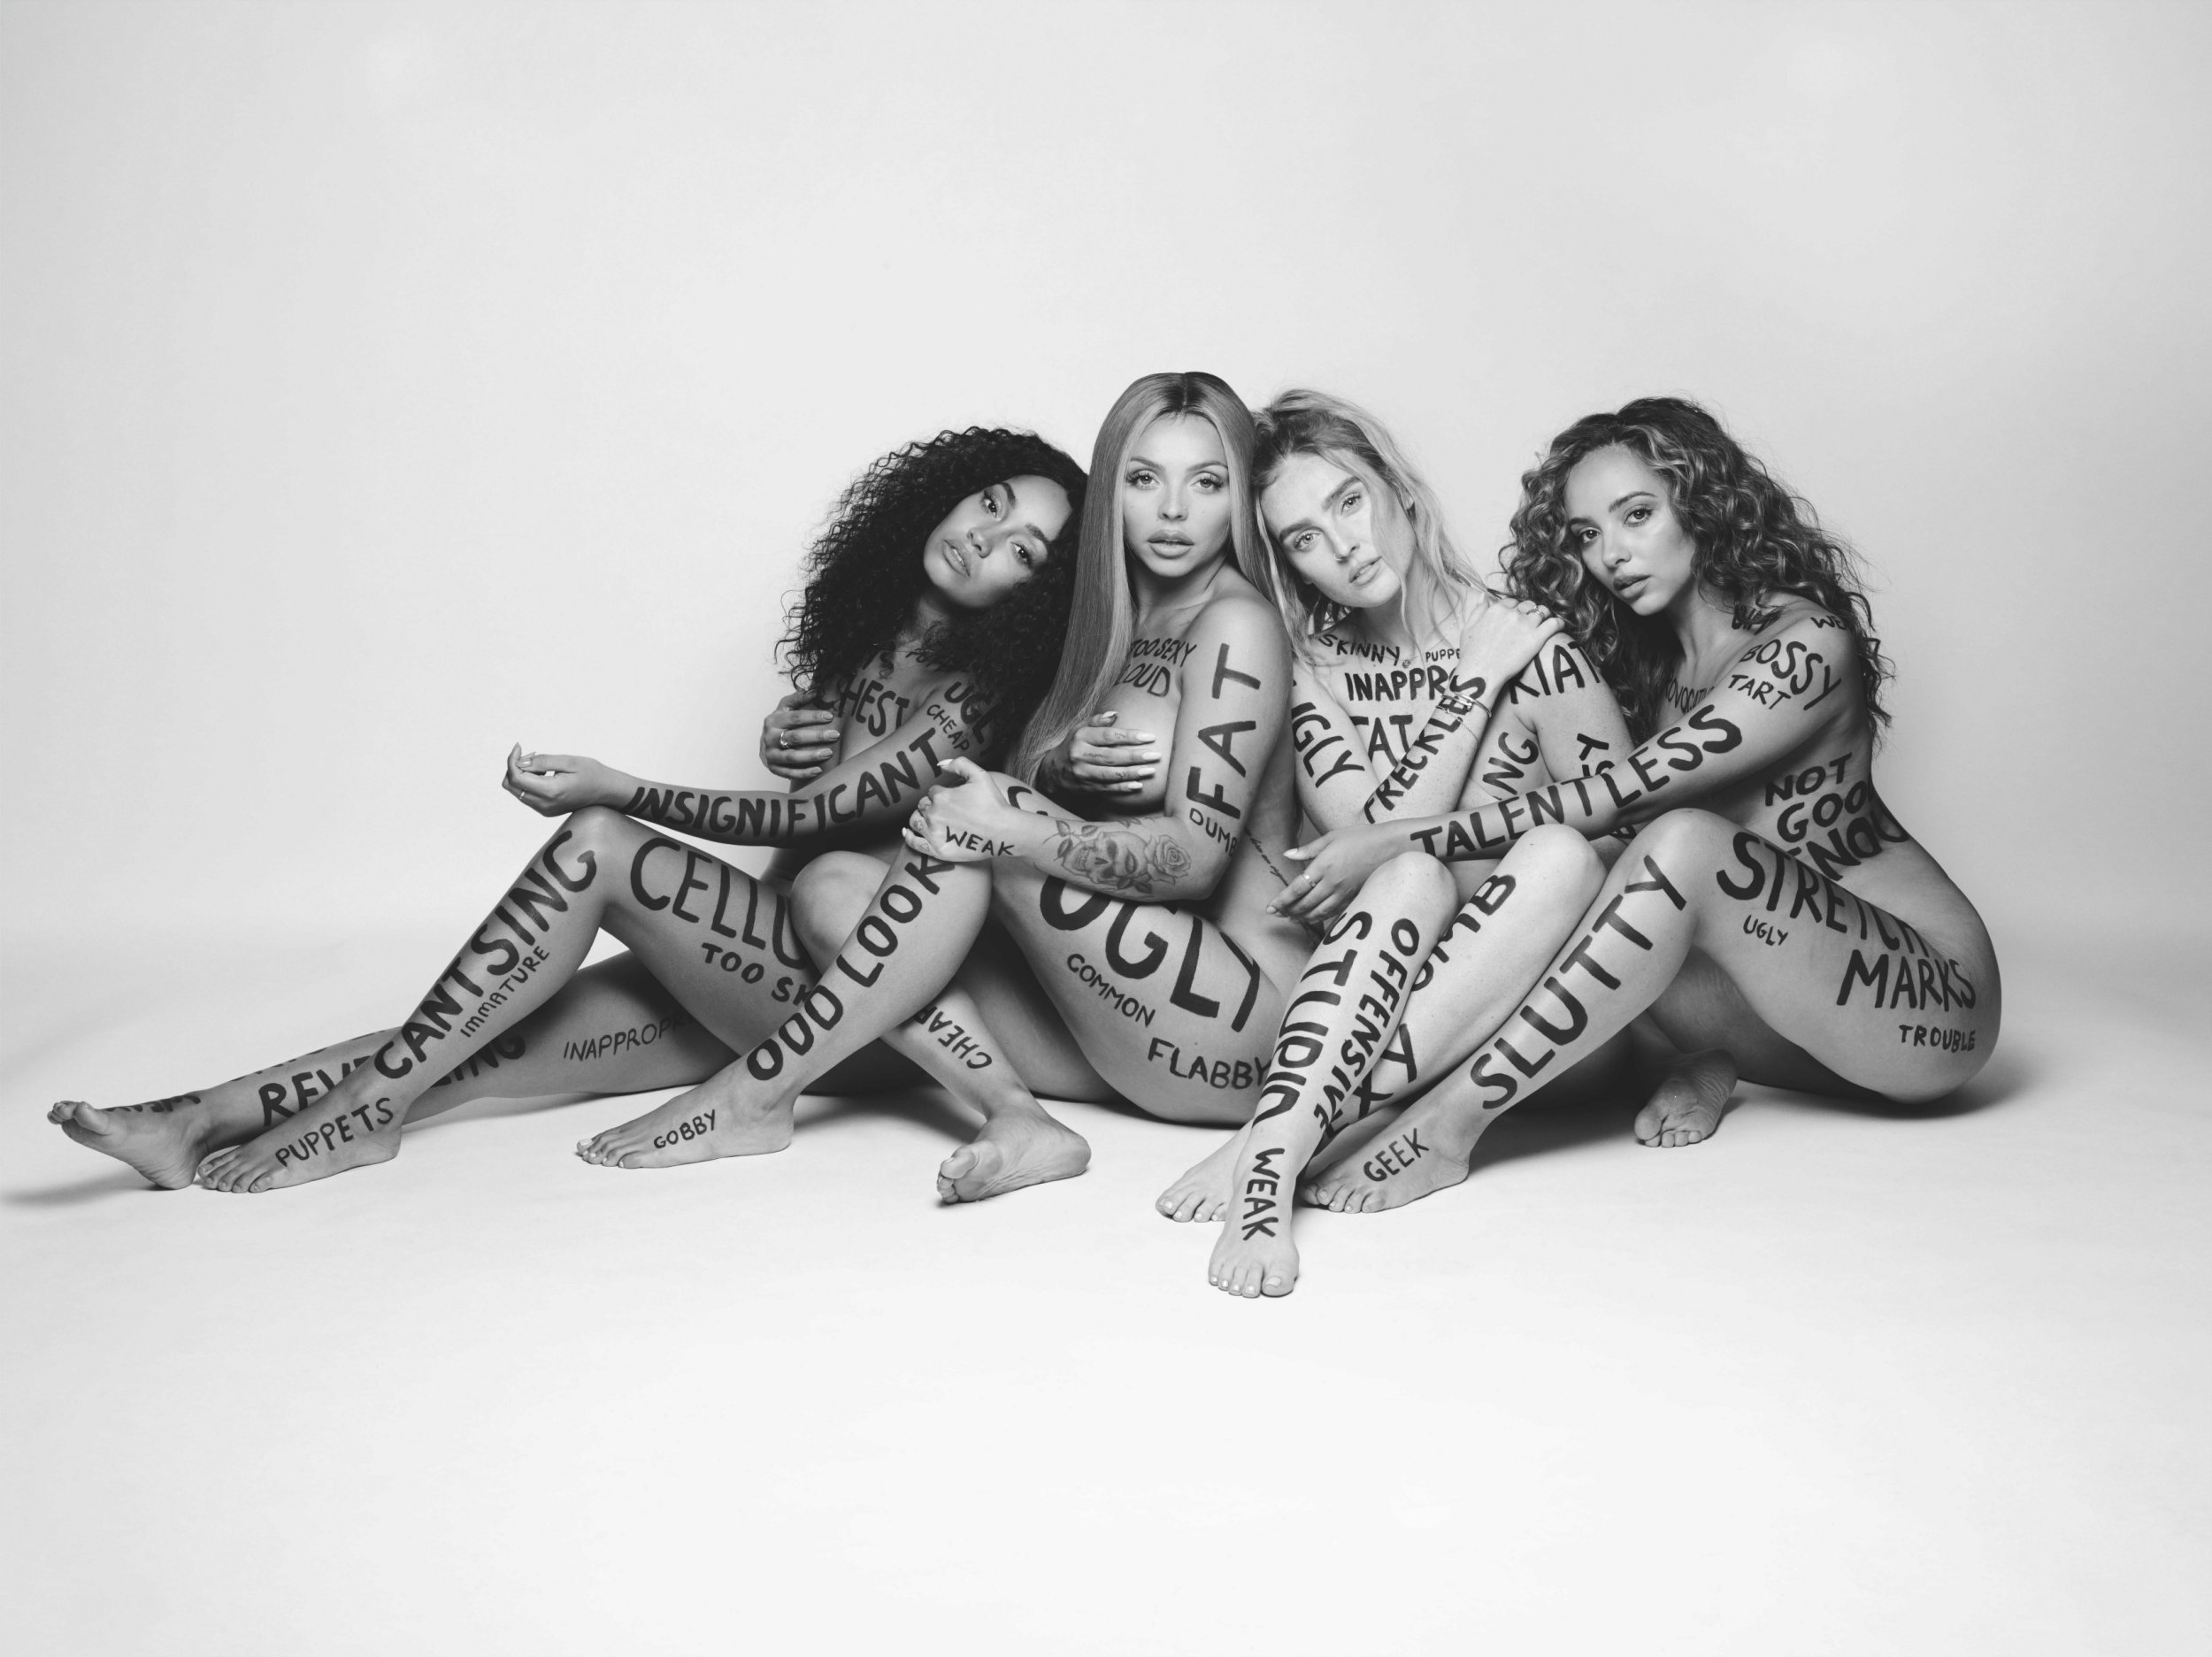 Little Mix's naked Strip video 'a skin deep stunt for sales', says PR expert